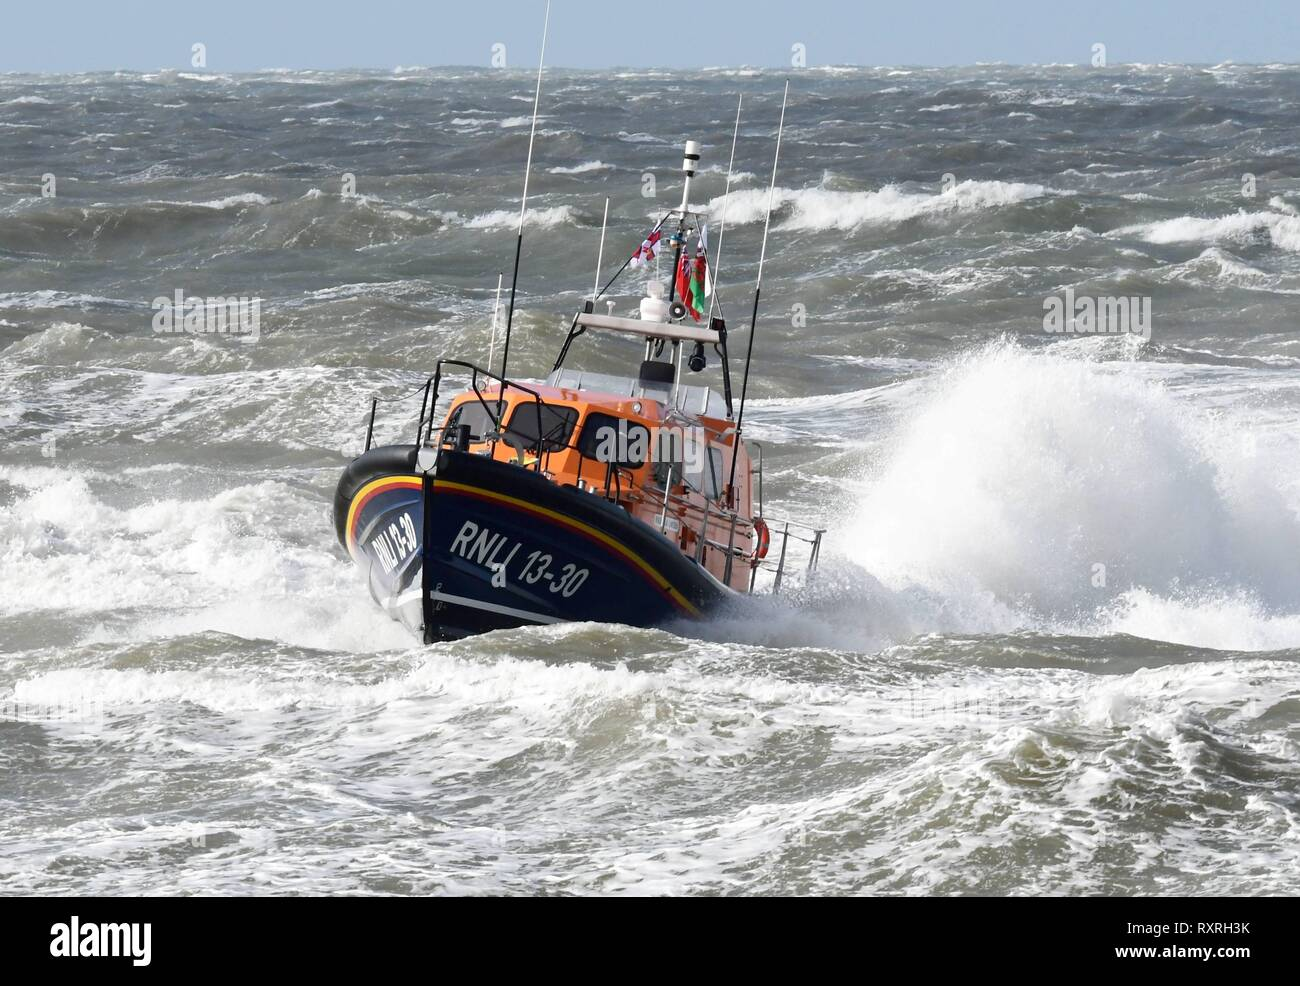 Sunday 10th March 2019 Barmouth Gwynedd  North Wales Barmouth  brand new RNLI Shannon Lifeboat the Ella Larsen arives at Barmouth. Stock Photo